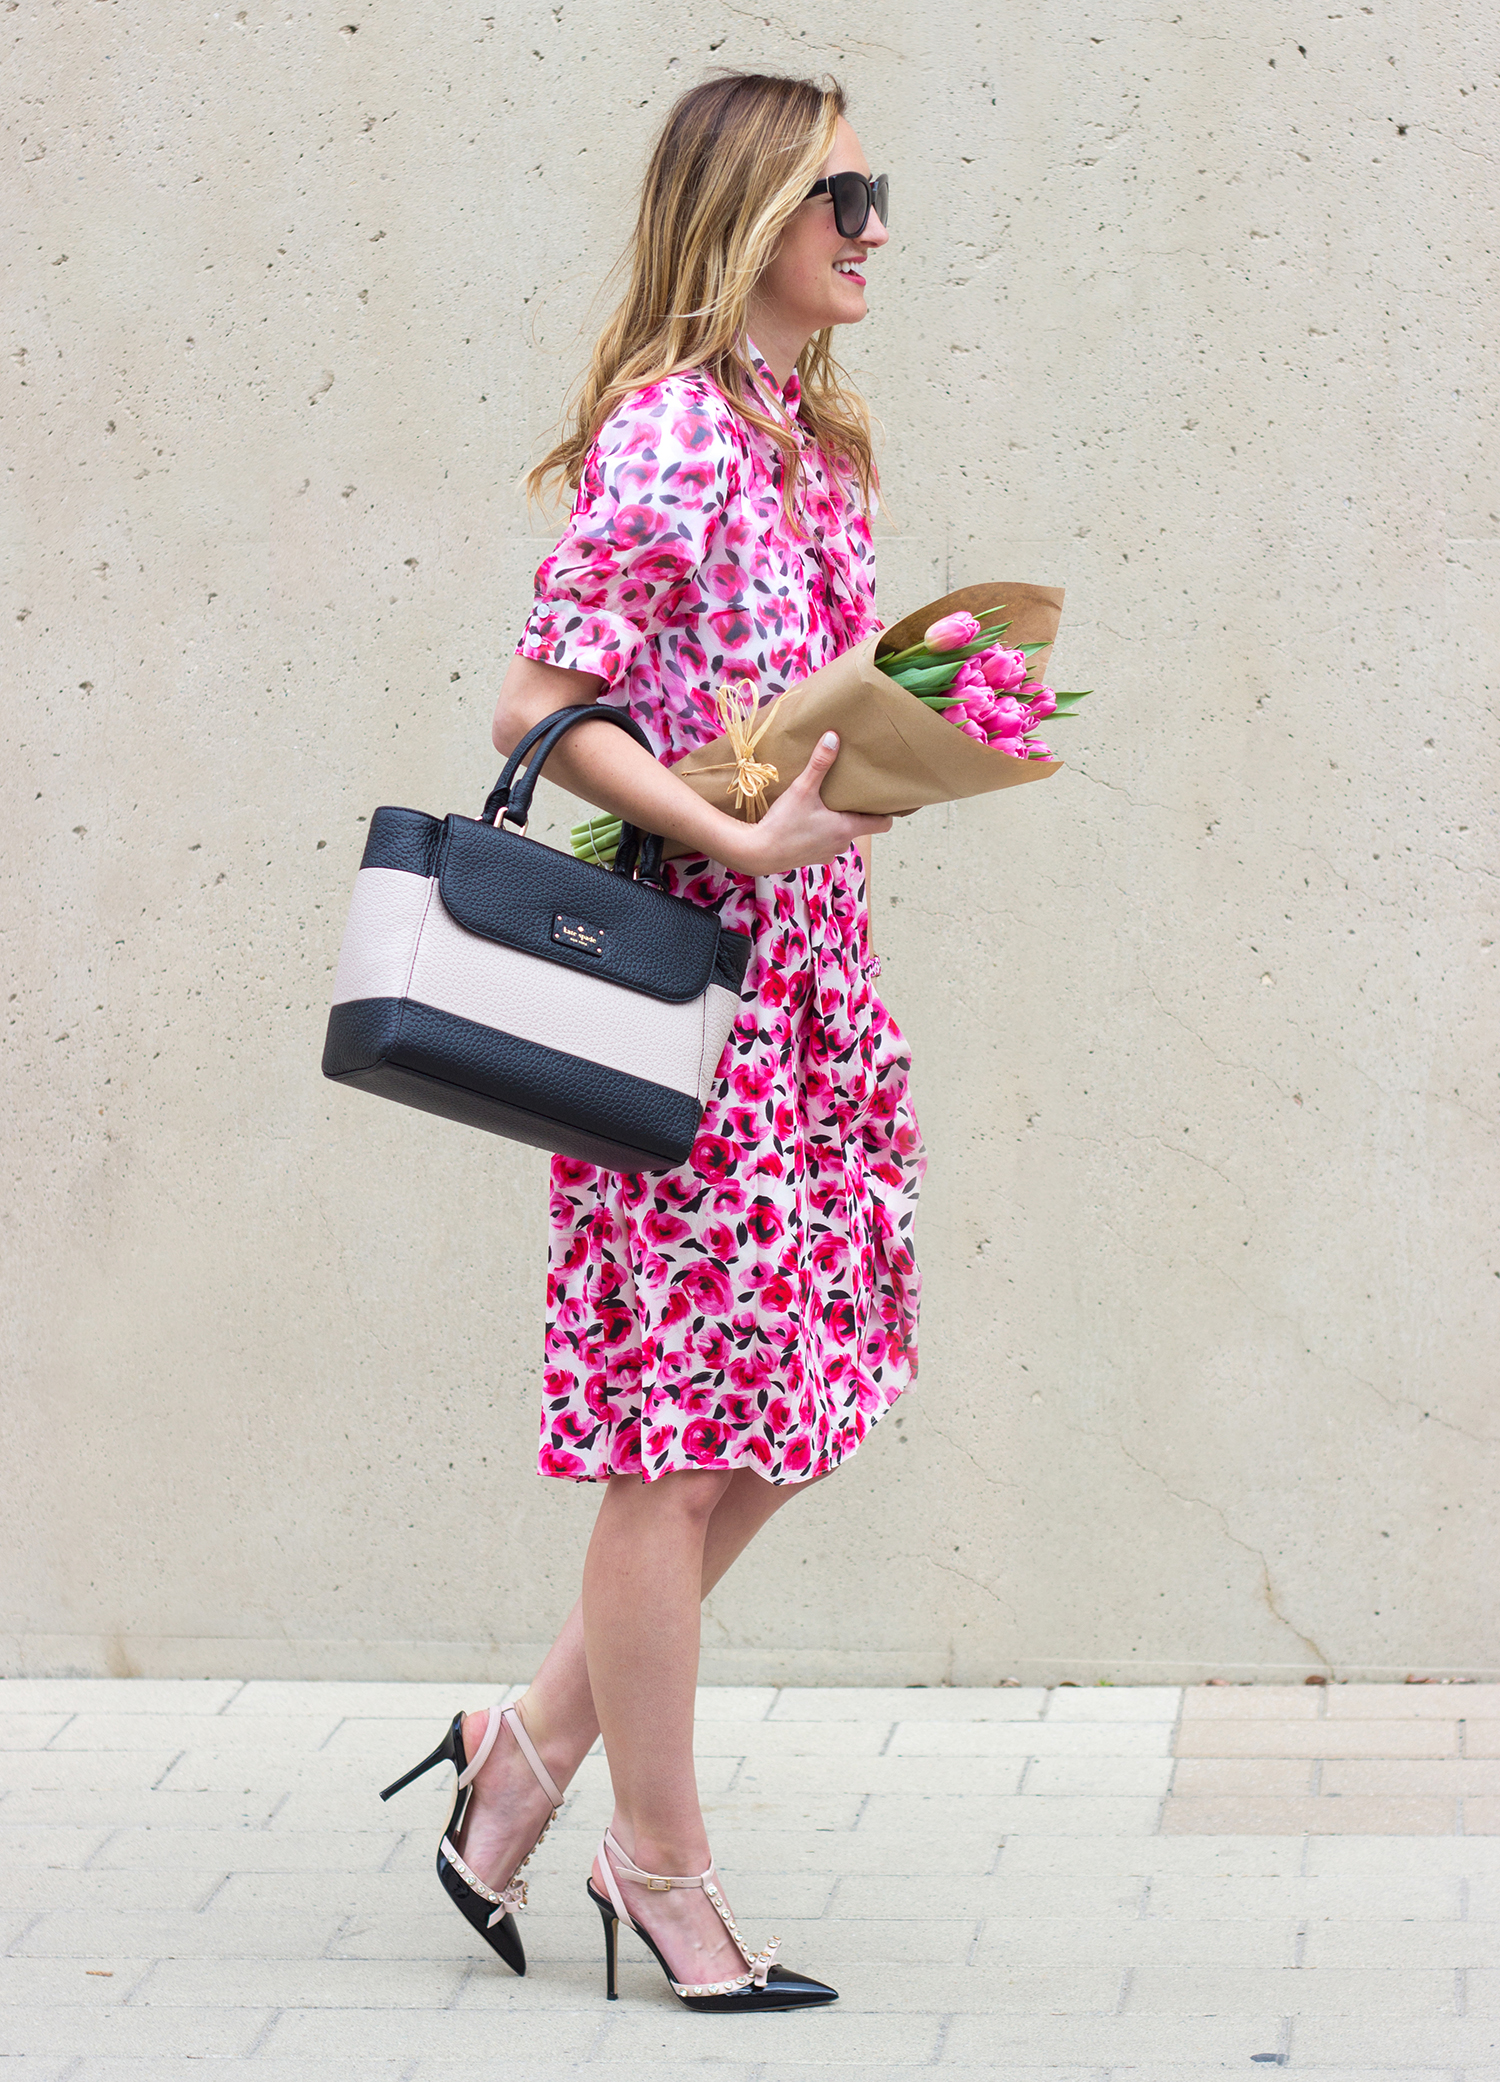 livvyland-blog-olivia-watson-austin-texas-fashion-blogger-kate-spade-broome-street-everyday-tee-white-rose-pleated-skirt-pink-black-spring-outfit-13